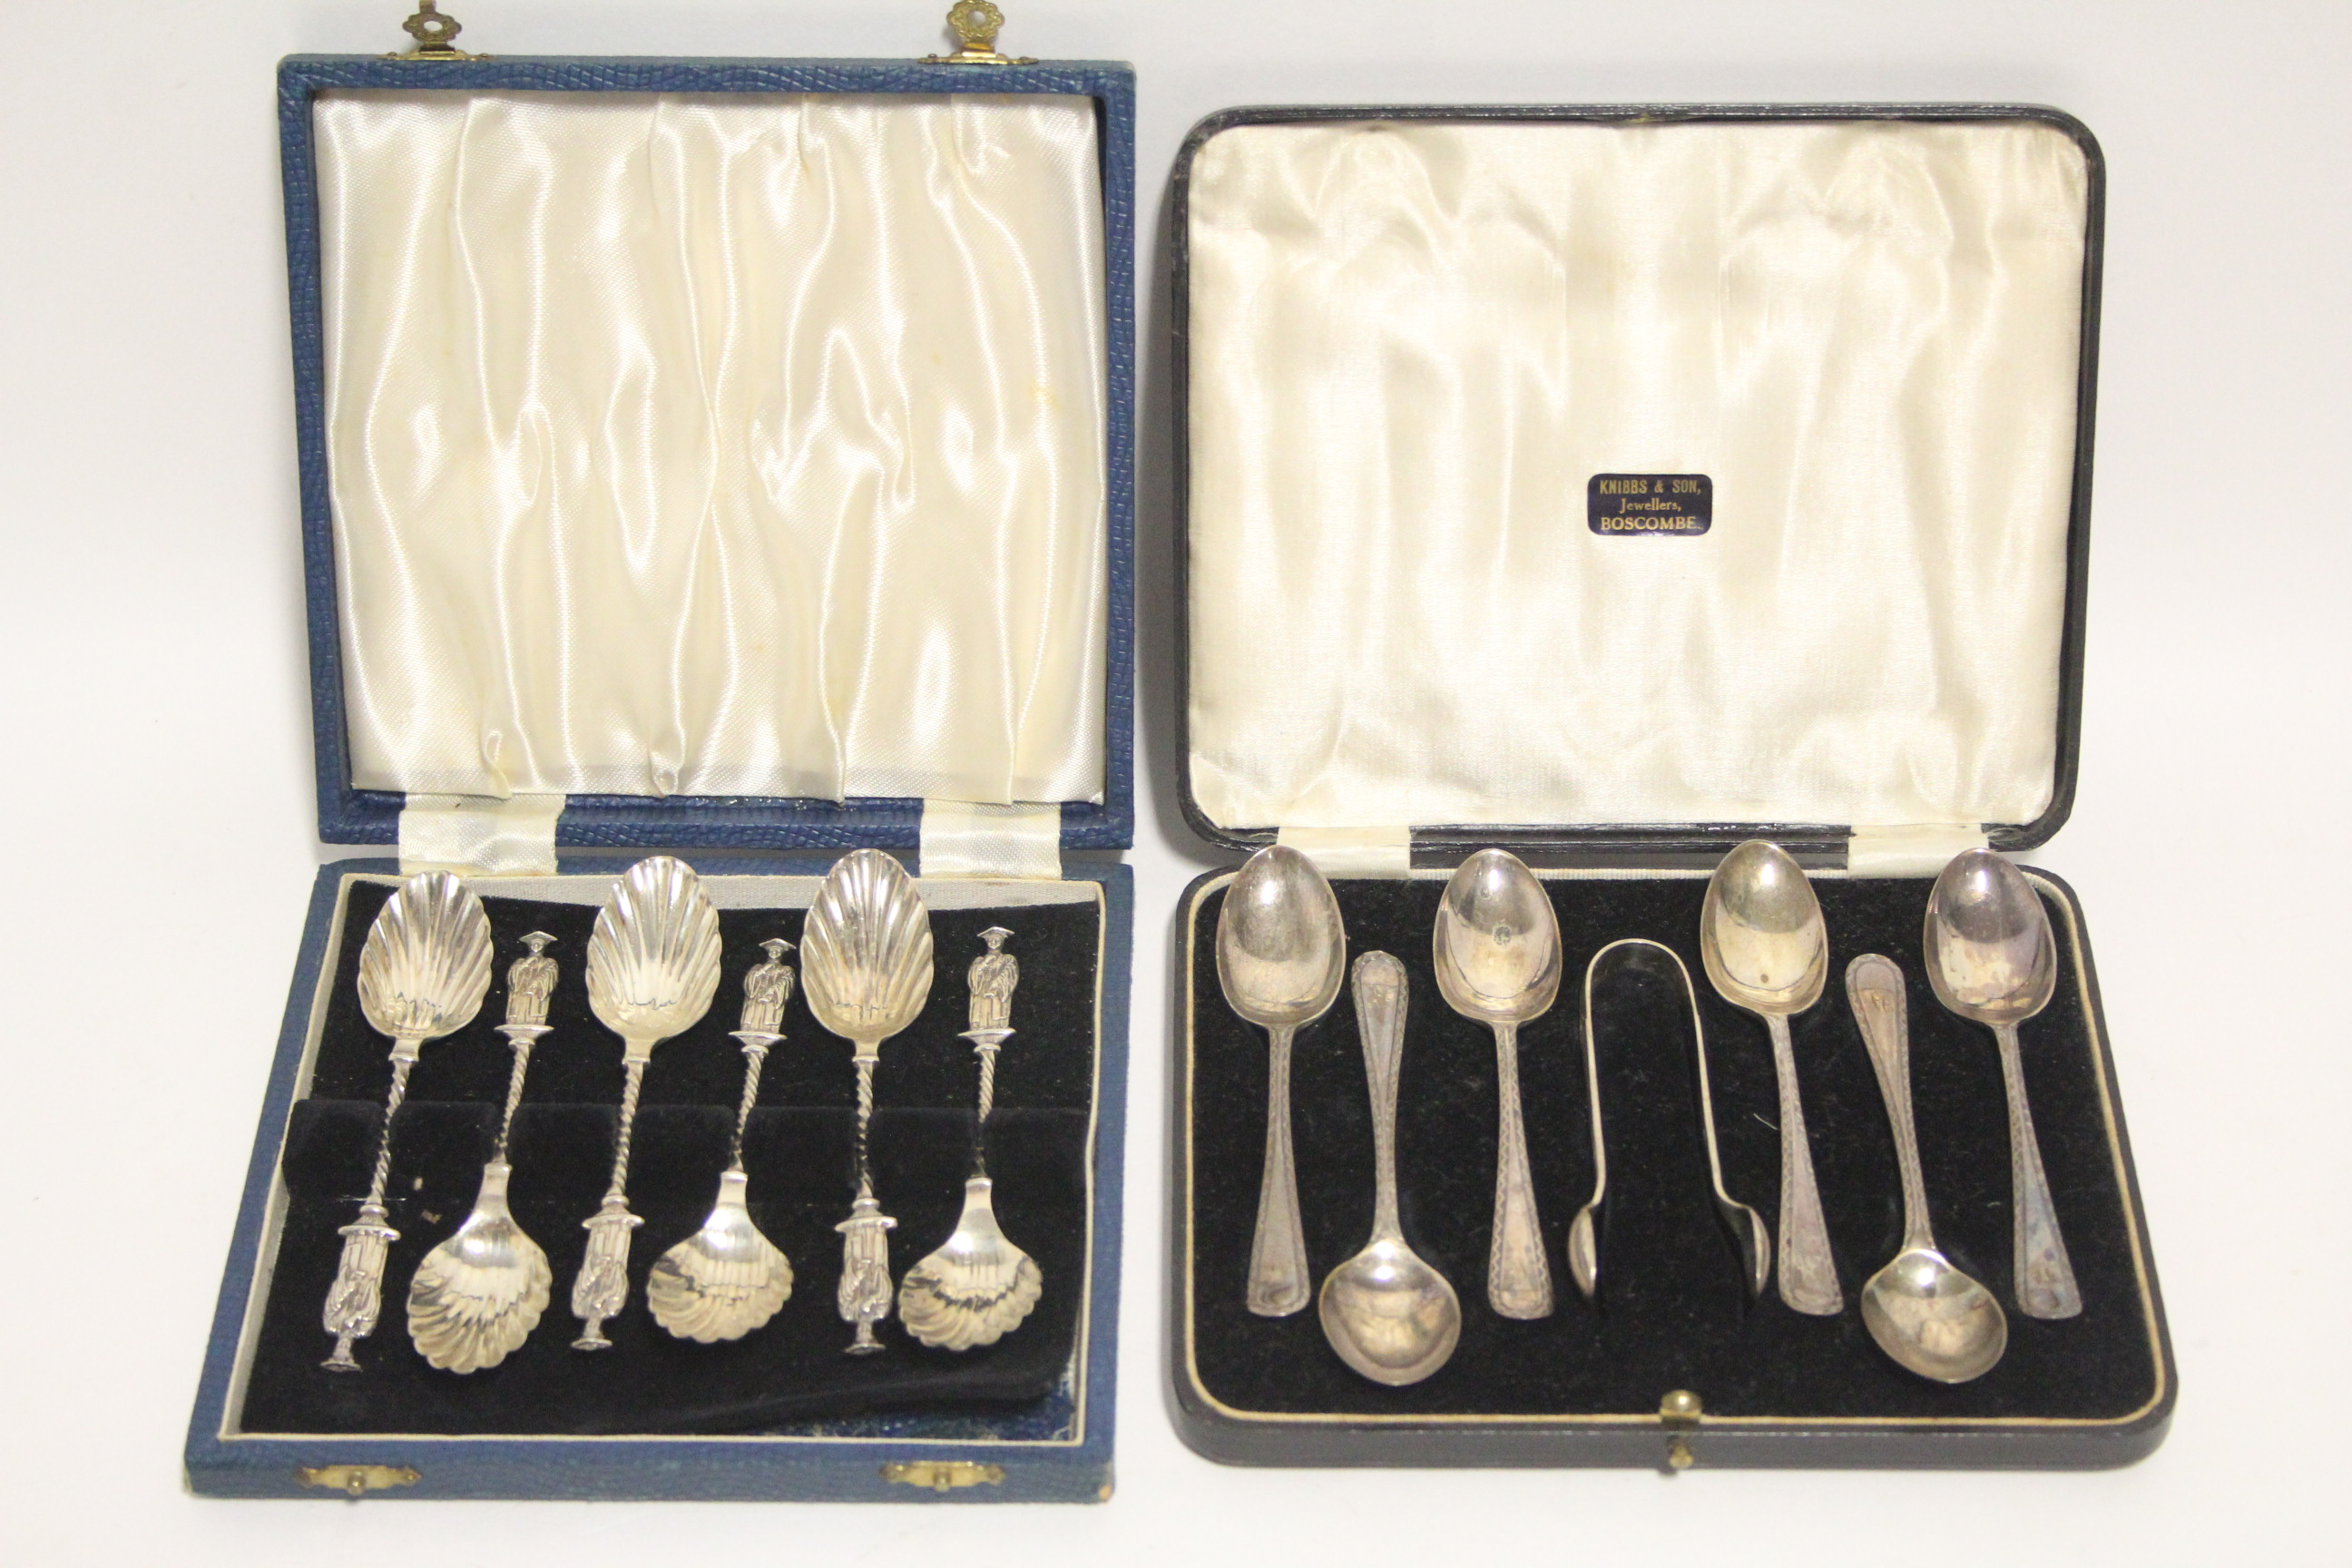 Lot 41 - A set of six late Victorian apostle-knop coffee spoons with shell bowls, Birmingham 1891, by